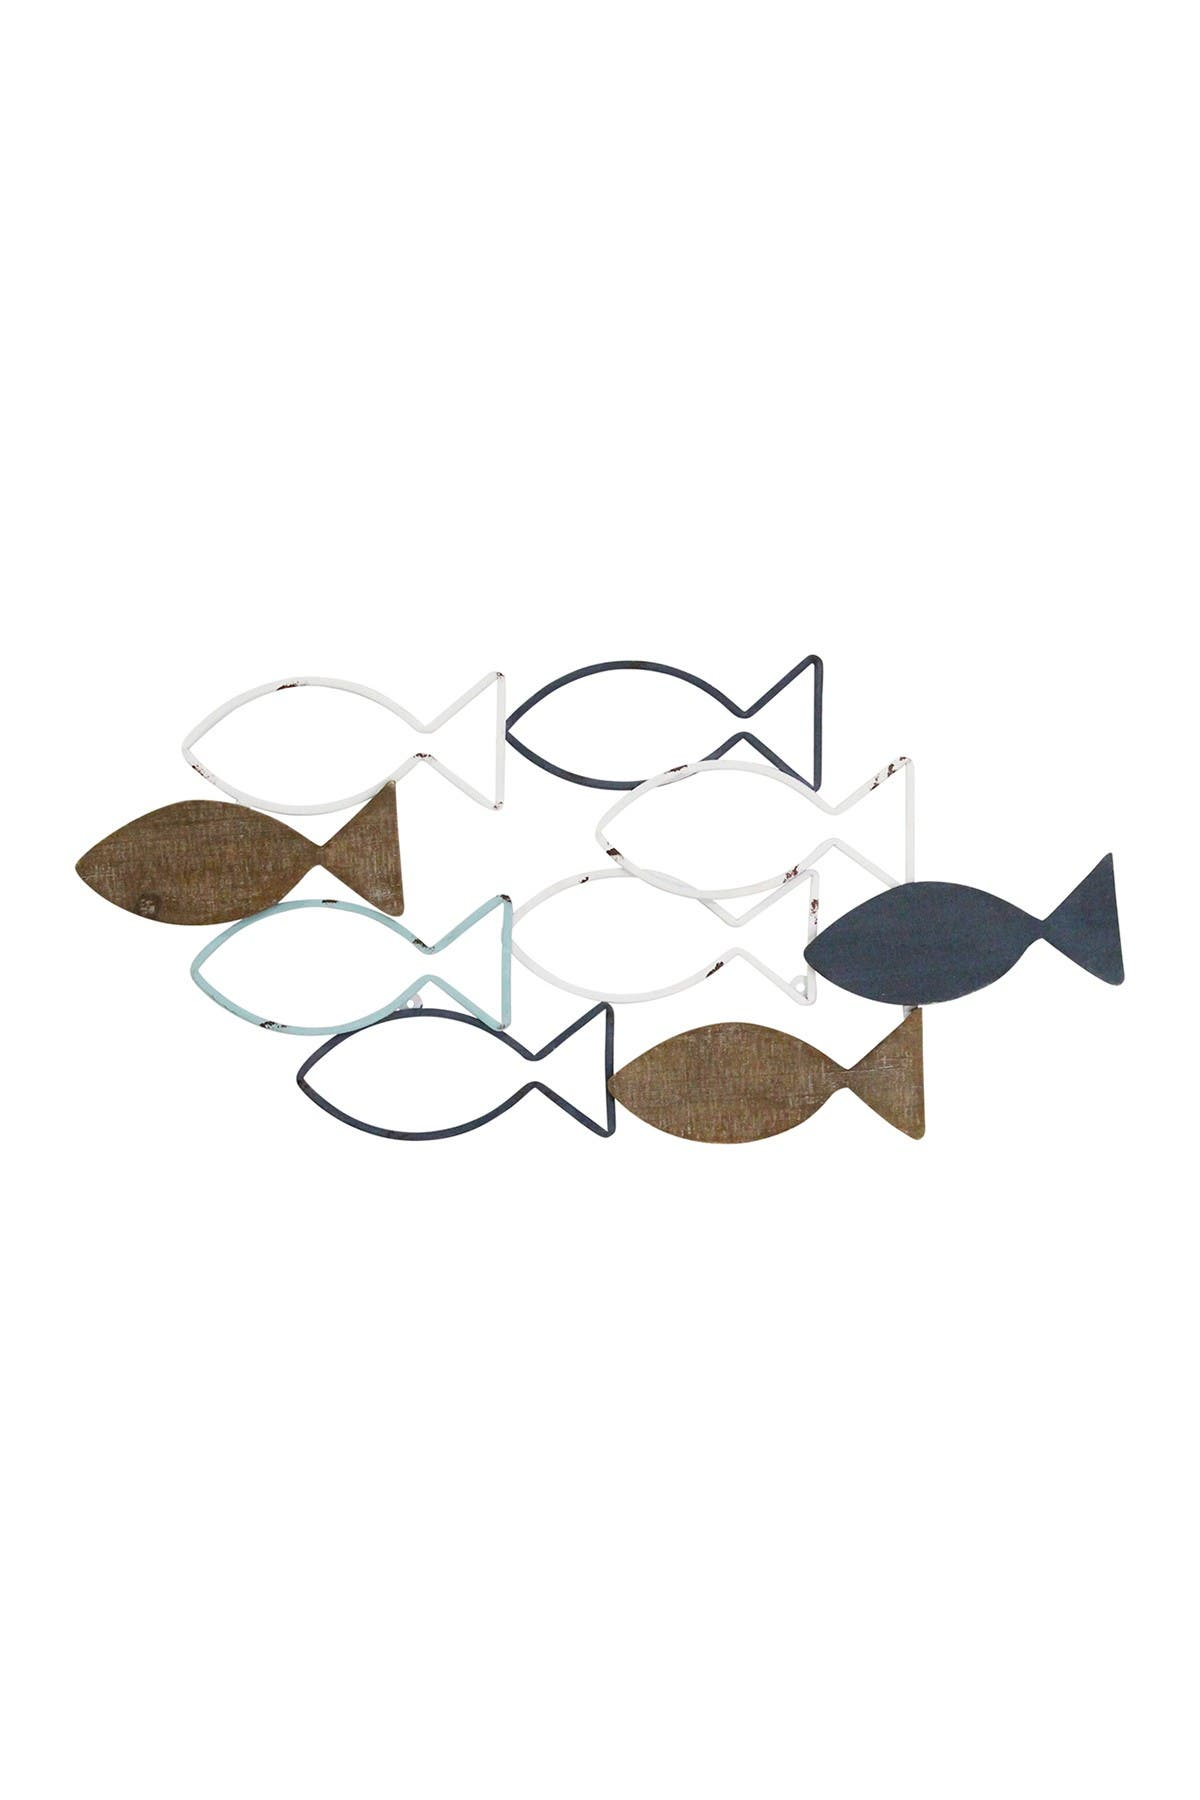 Image of Stratton Home Wood And Metal School Of Fish Wall Decor